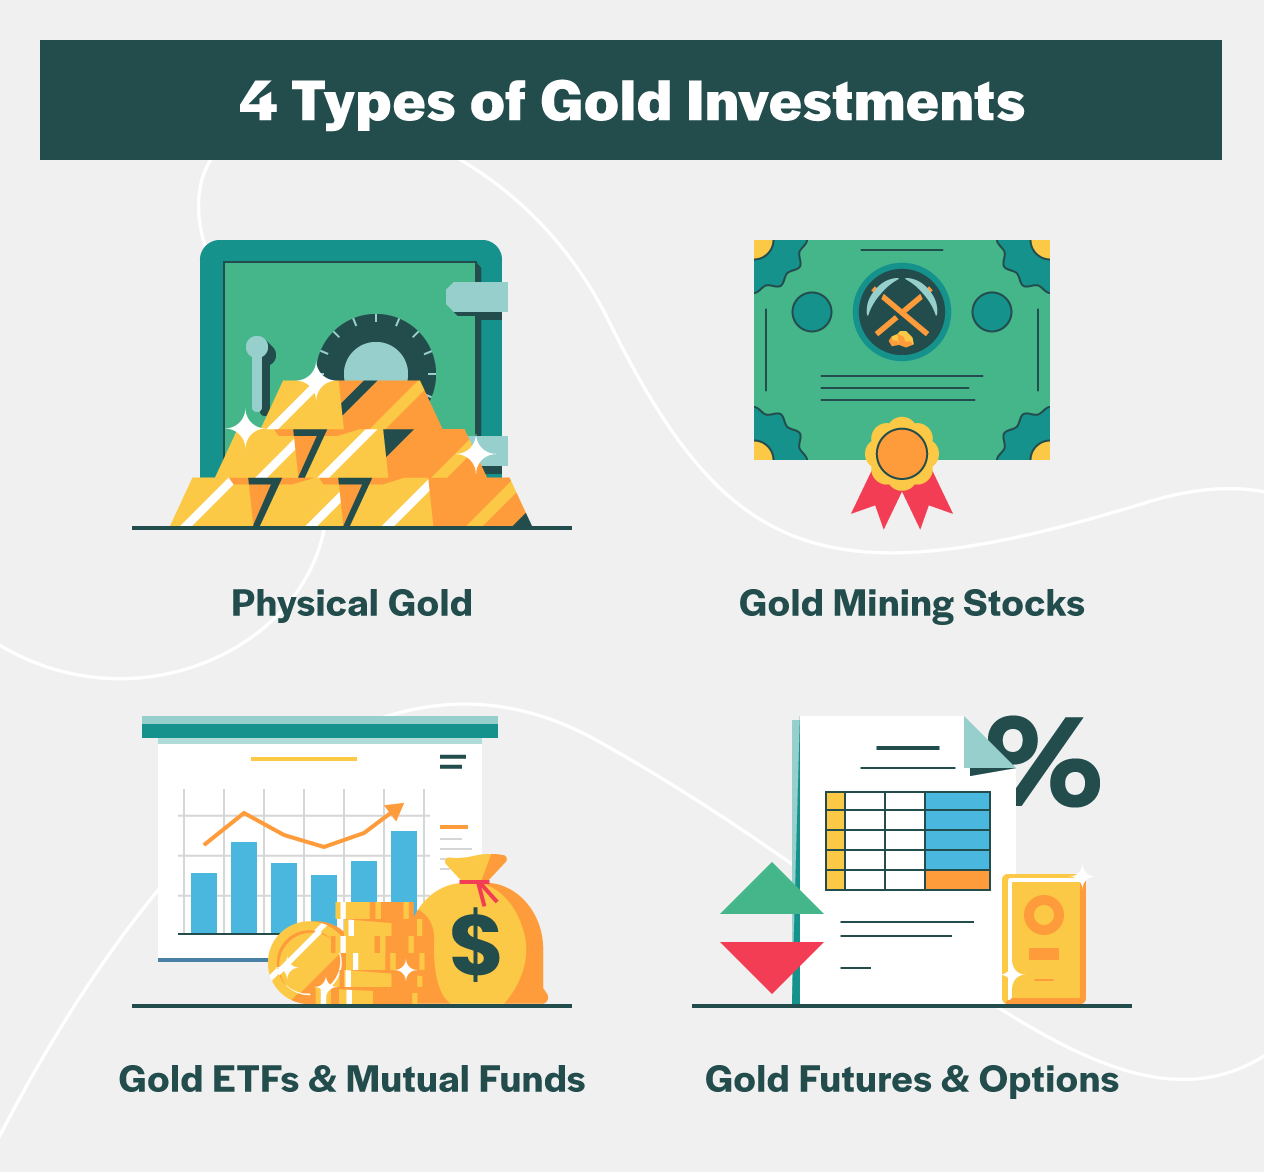 4 types of gold investments